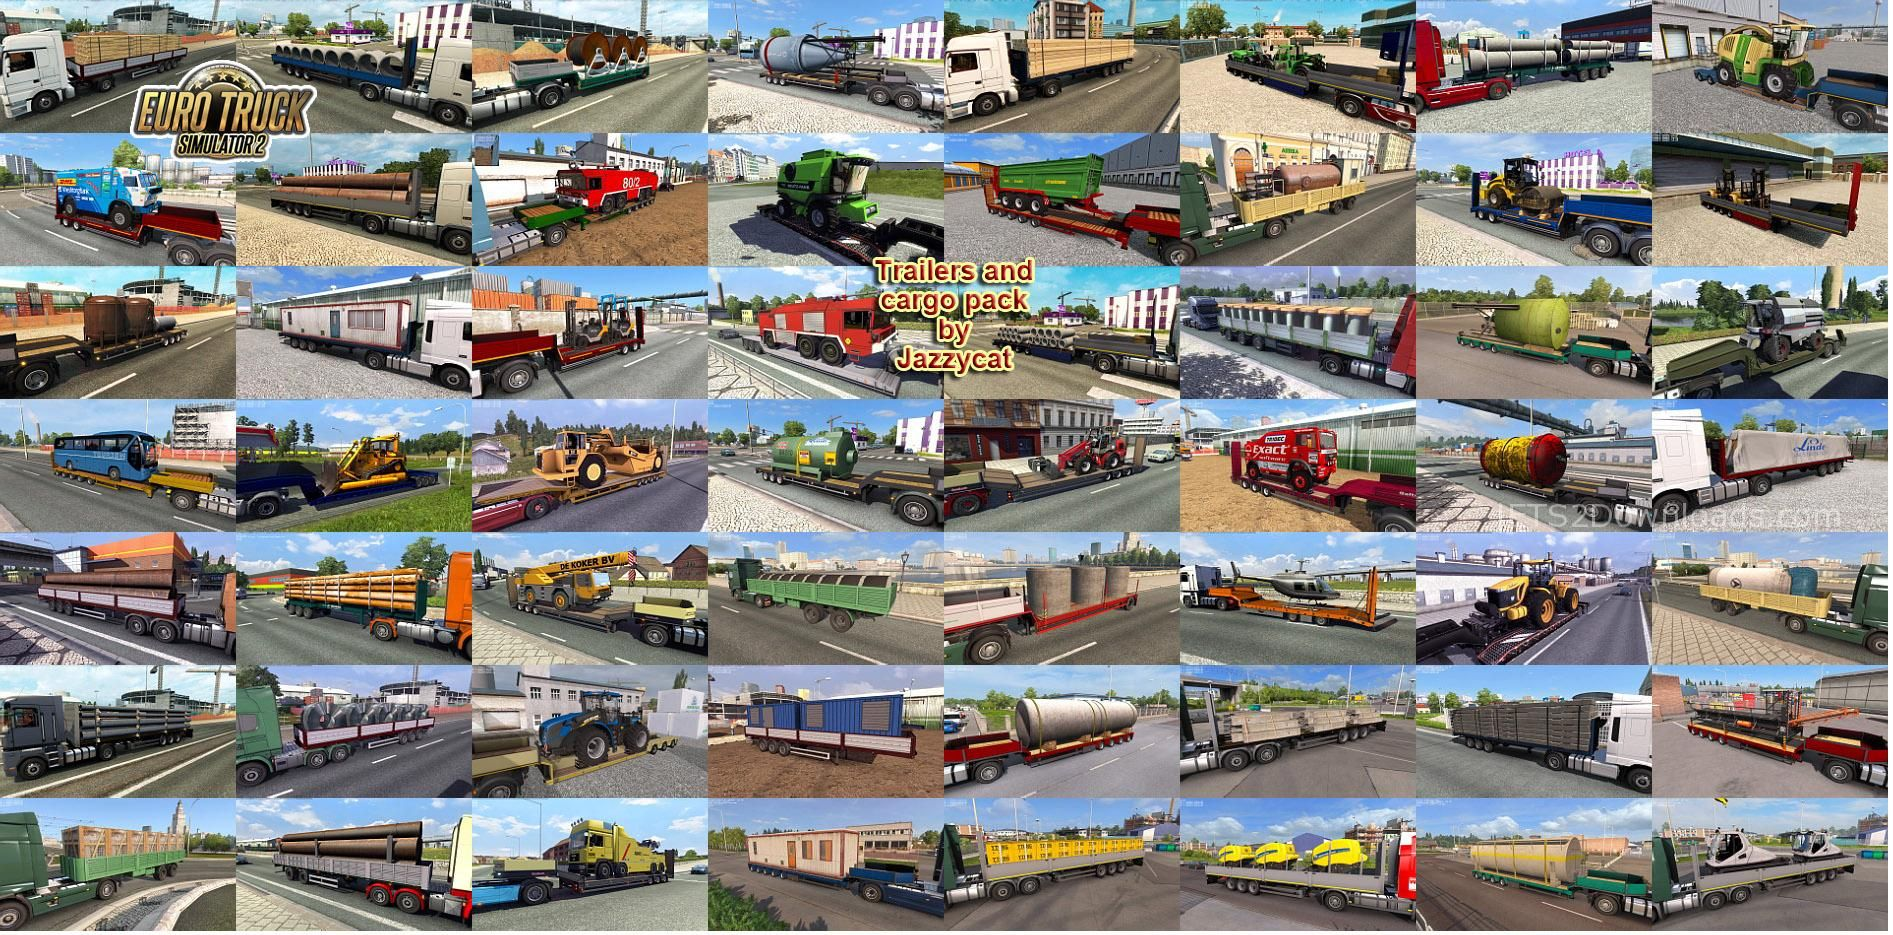 fix-trailers-cargo-pack-jazzycat-1